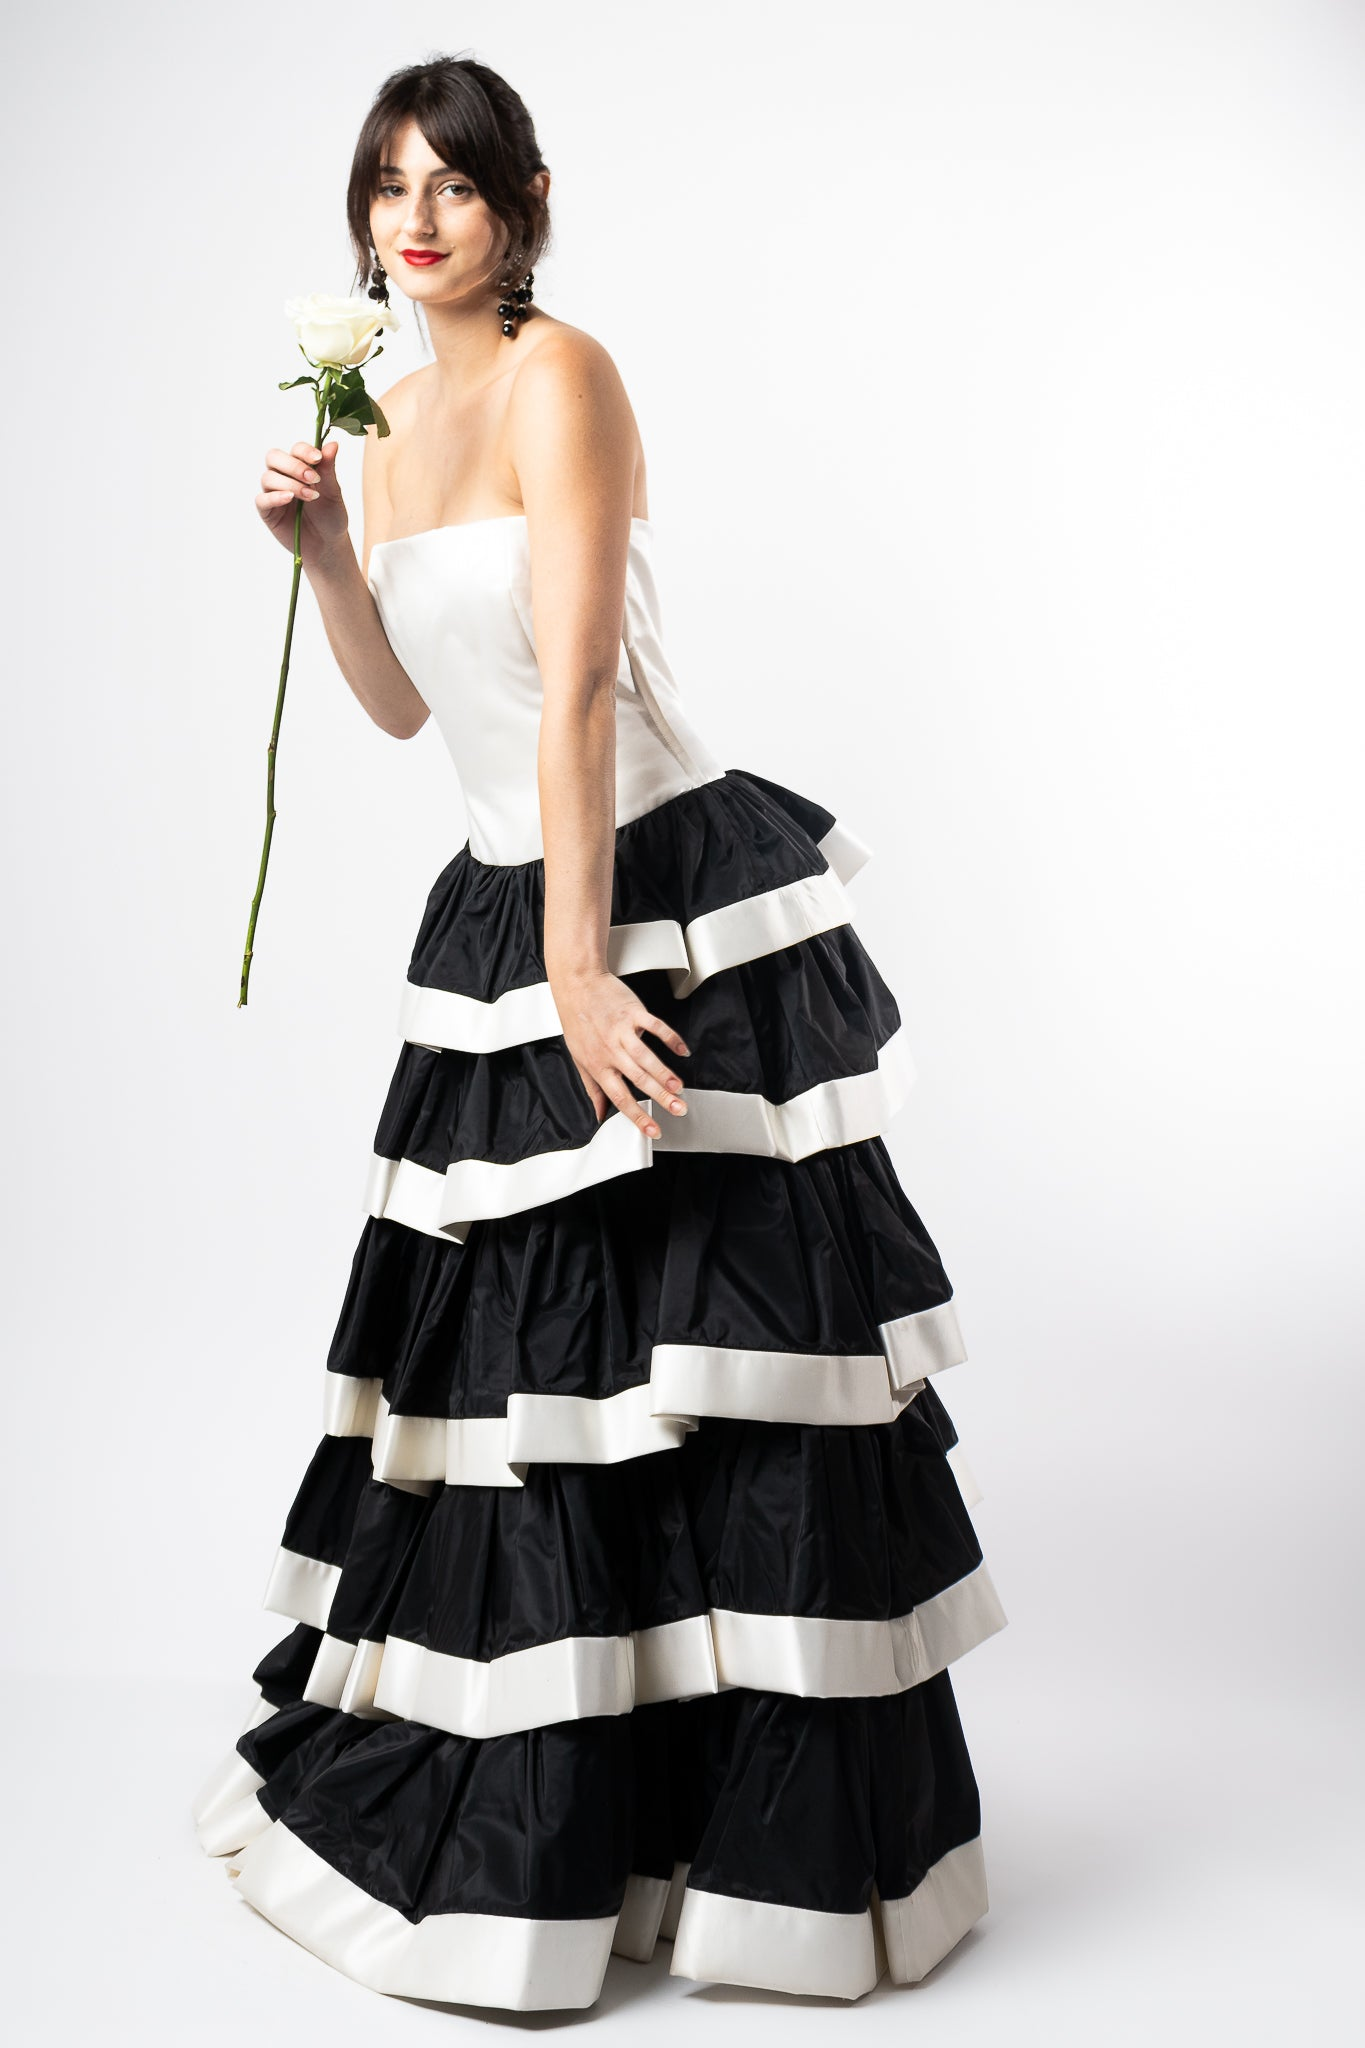 Recess Los Angeles Vintage Consignment Romy Reiner Escada Tiered Gown